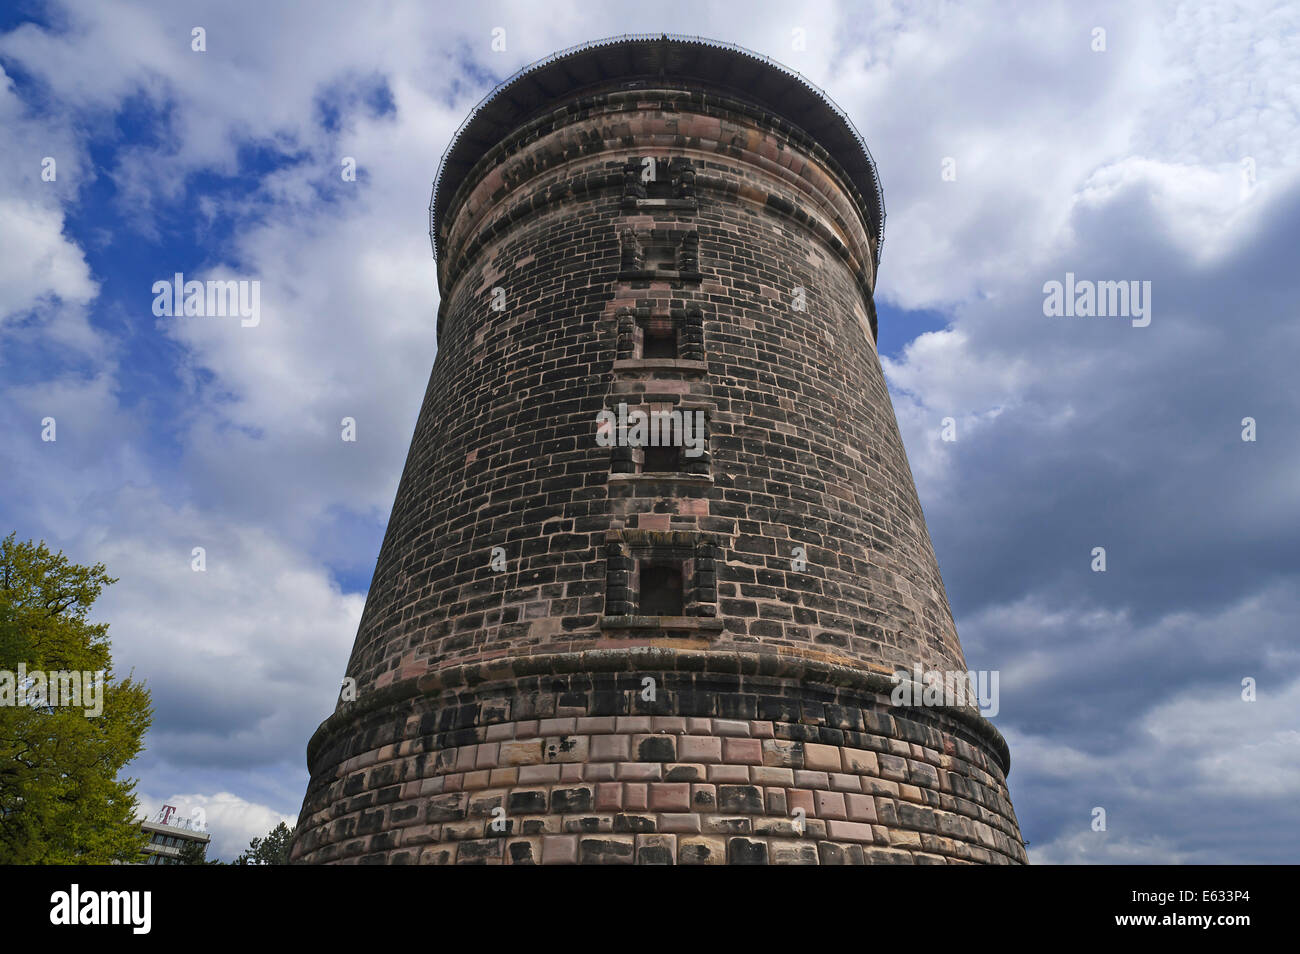 Laufer Schlagturm, gate tower of the city fortifications, around 1250, Nuremberg, Middle Franconia, Bavaria, Germany - Stock Image